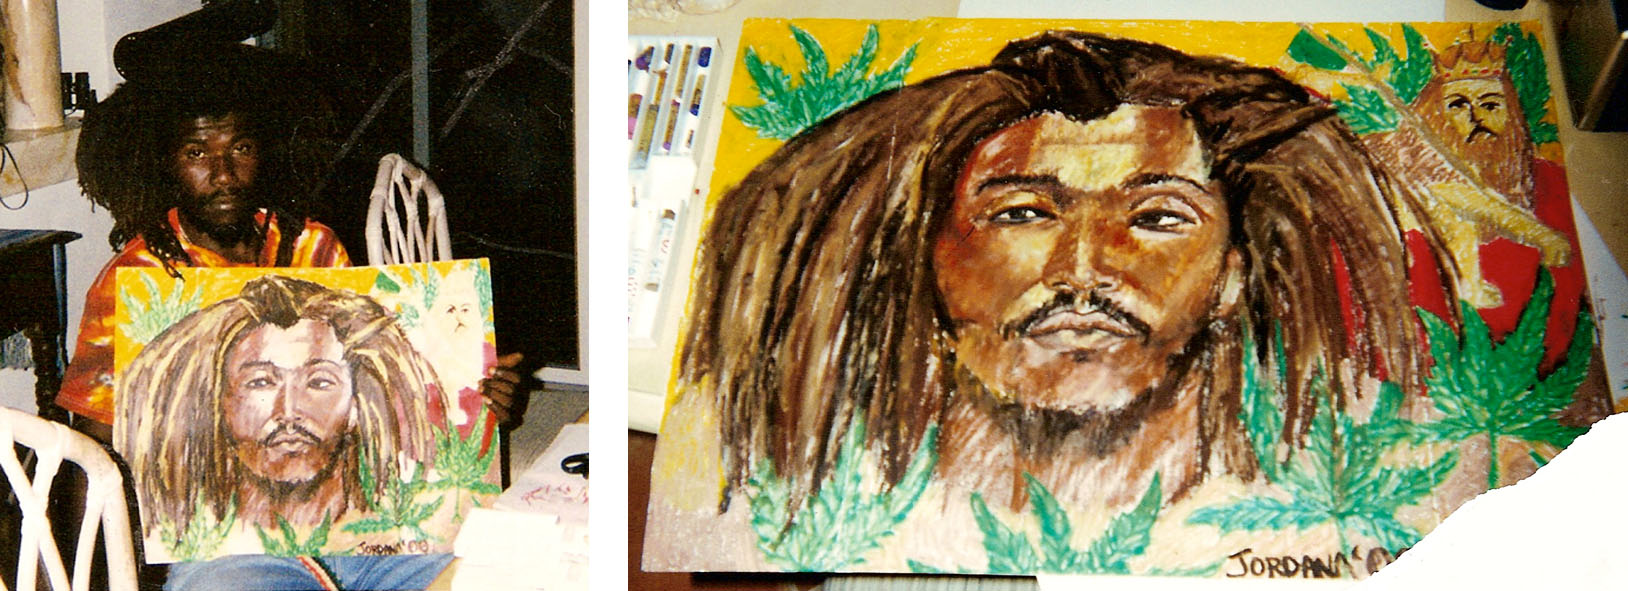 SHABBA     2000 ,  local Rasta from King's Town, Providenciales, Turks and Caicos.  BURNED IN FIRE      Oil pastel on paper